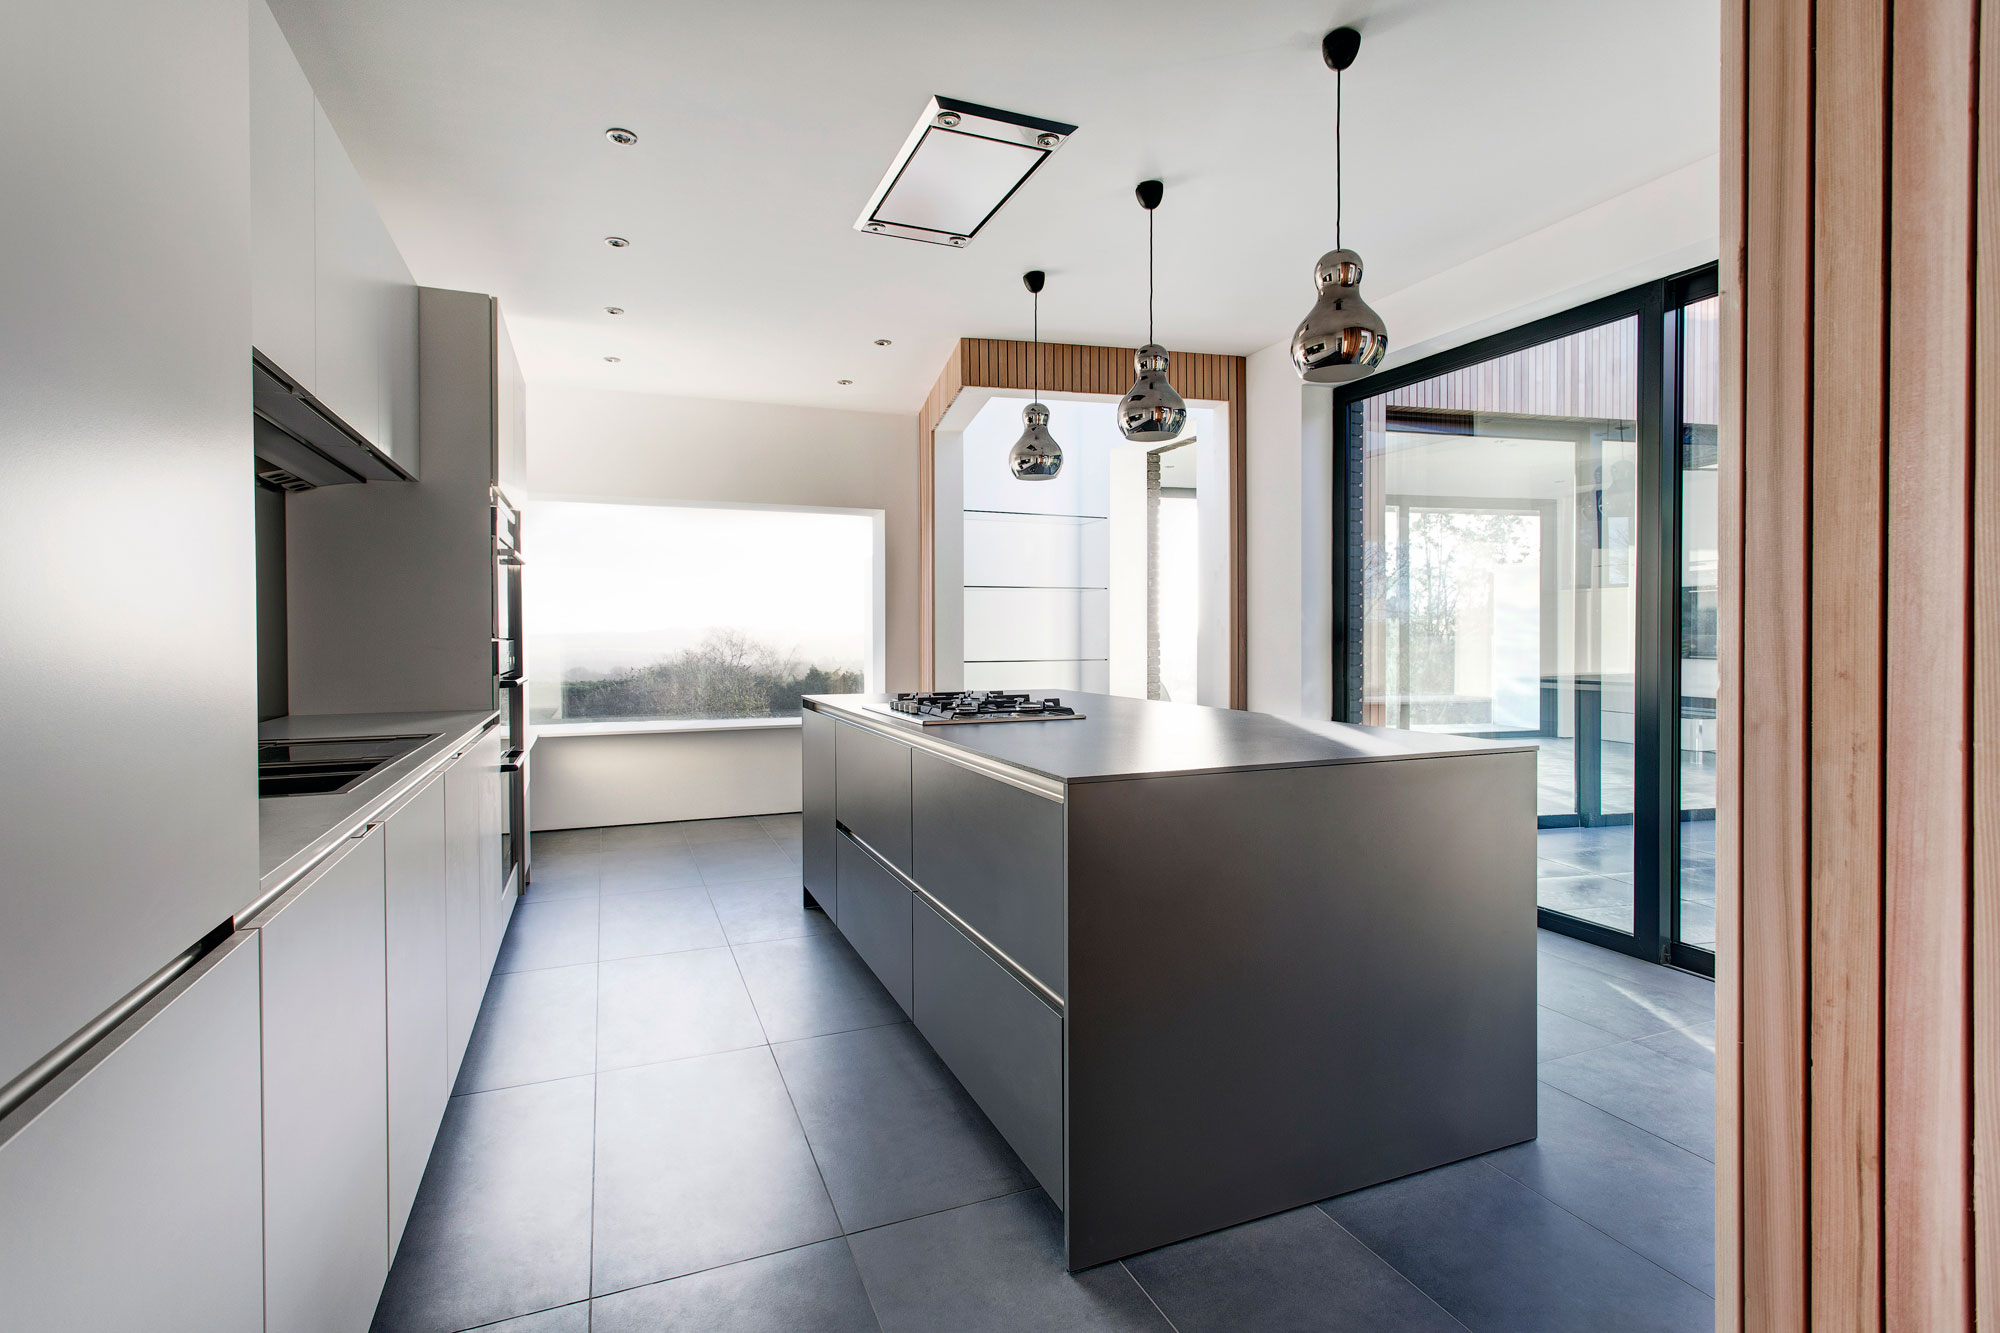 Pendant Lighting, Grey Kitchen Island, Modern Home in Hampshire, England